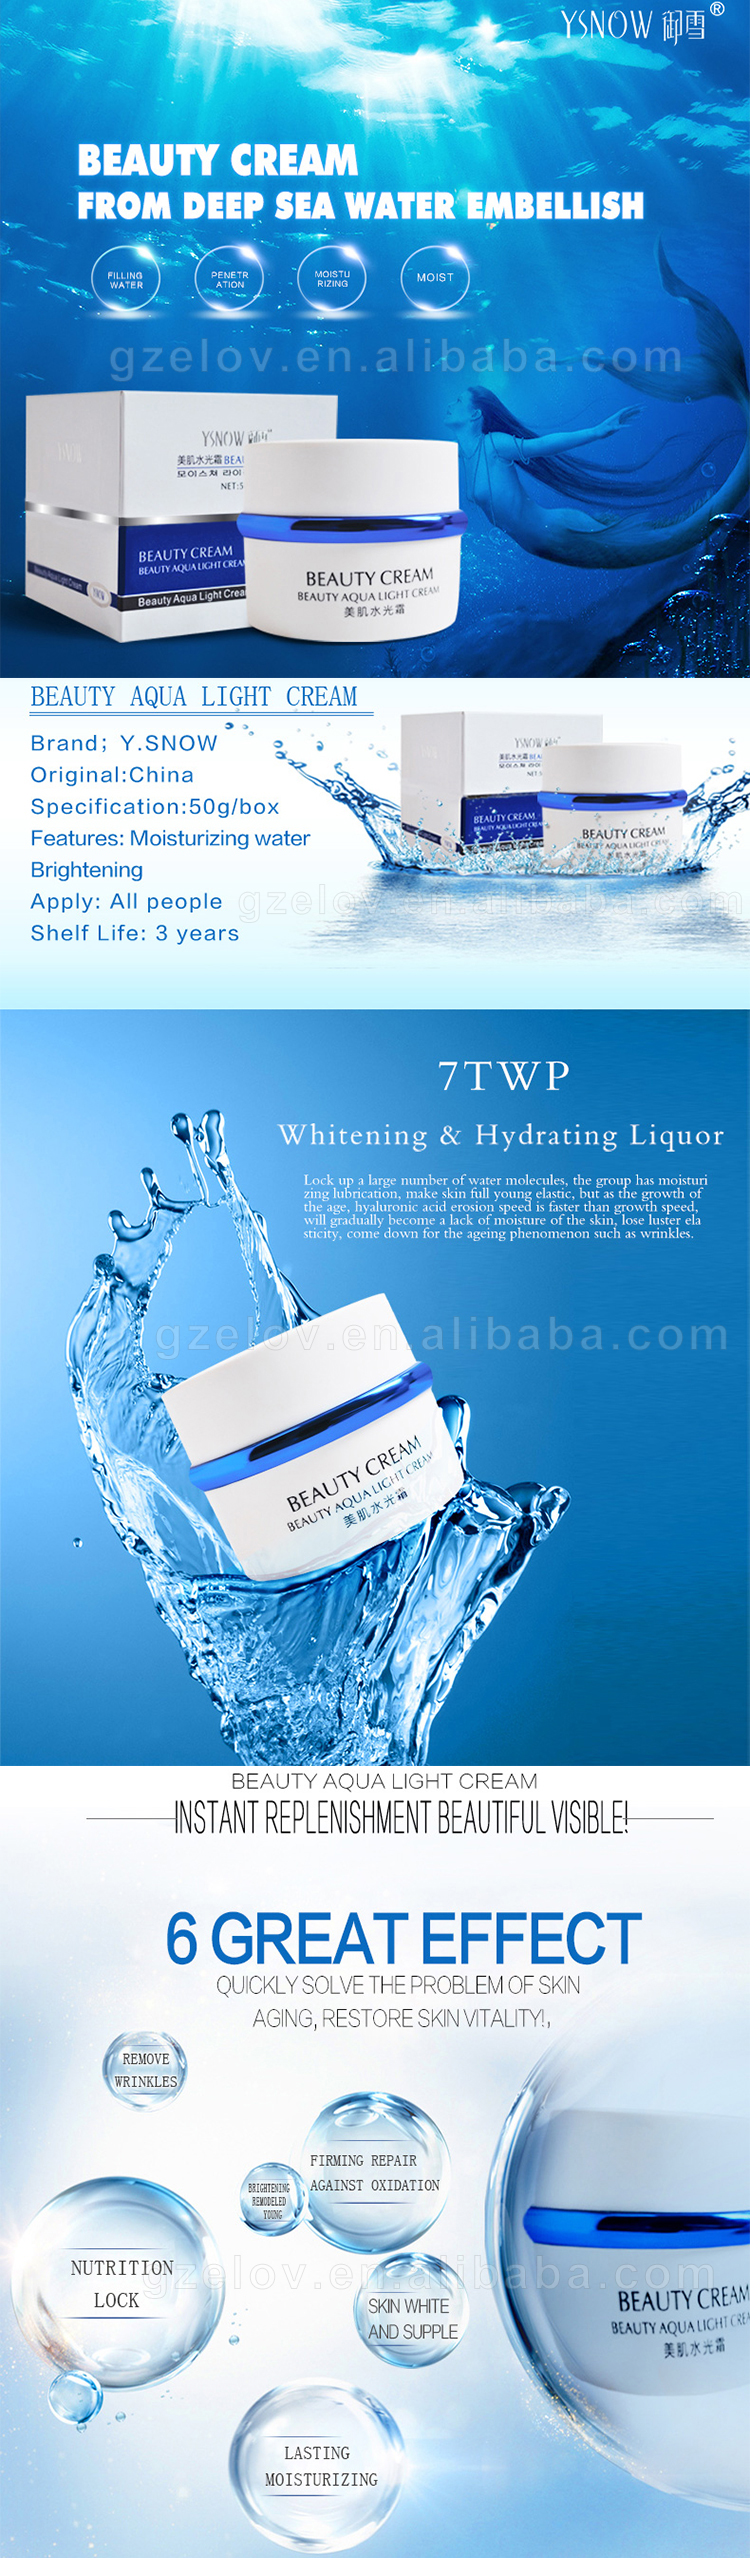 Hydrating Cream.jpg